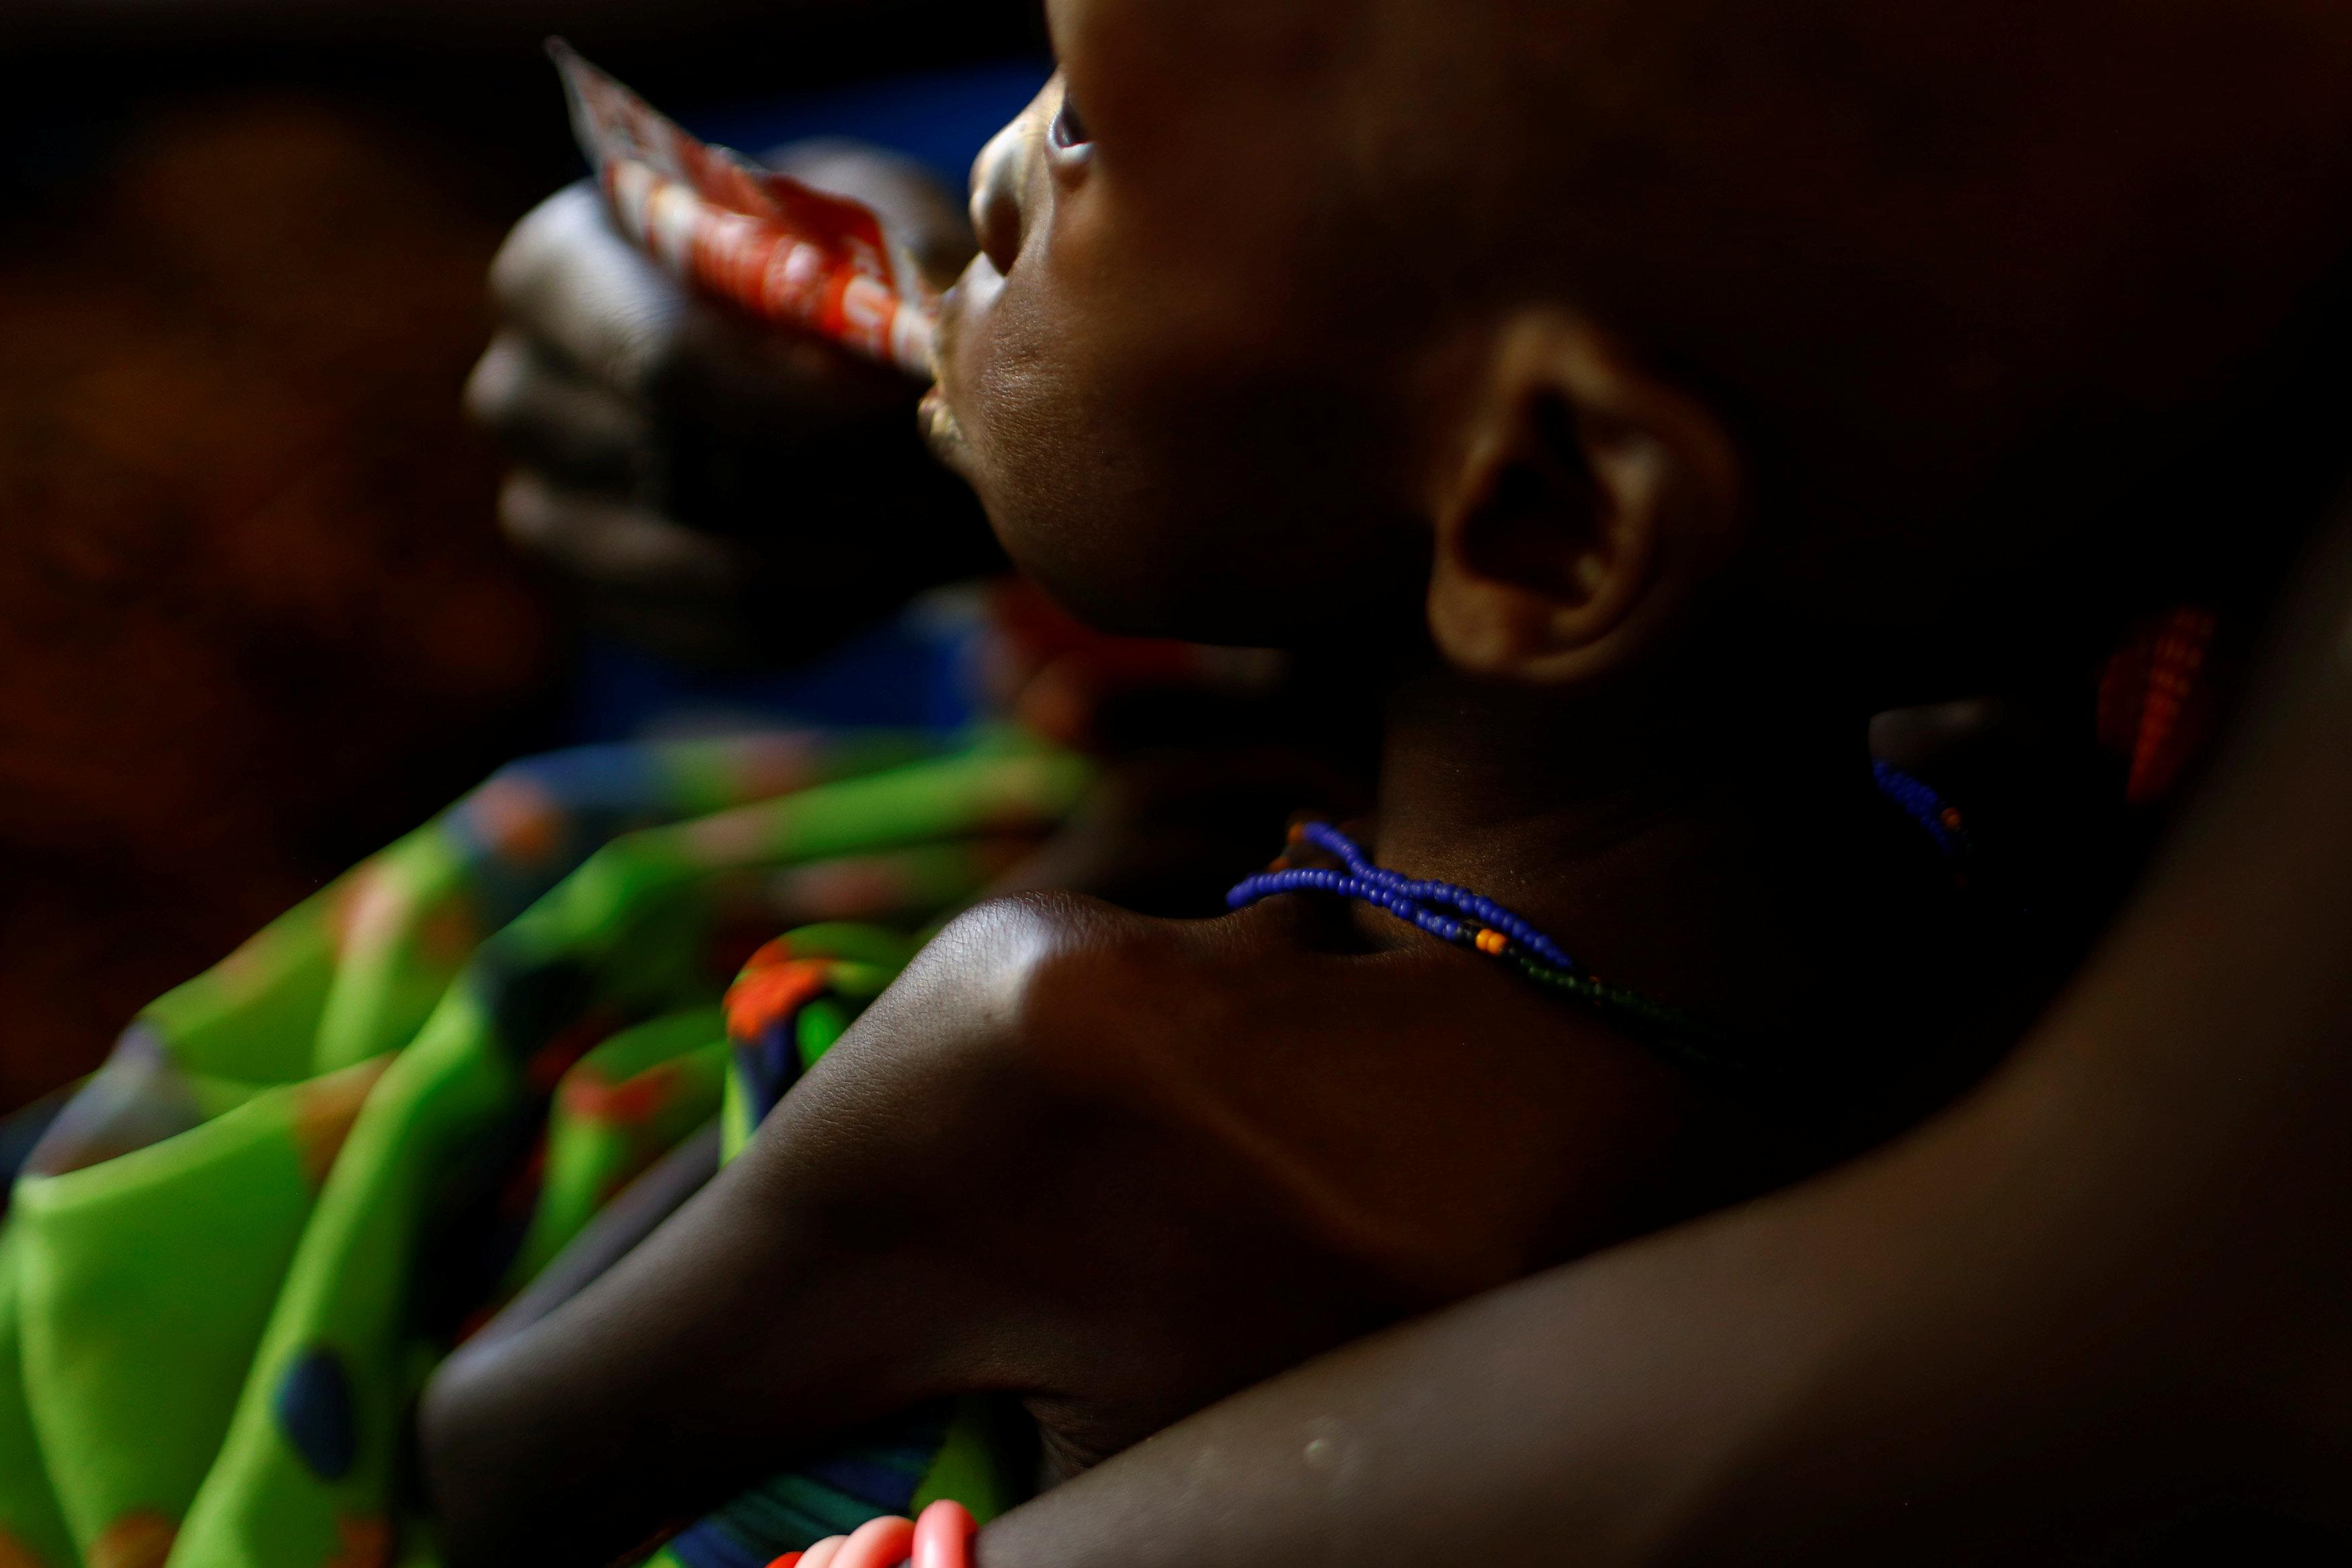 1.4 million children face starvation in four countries